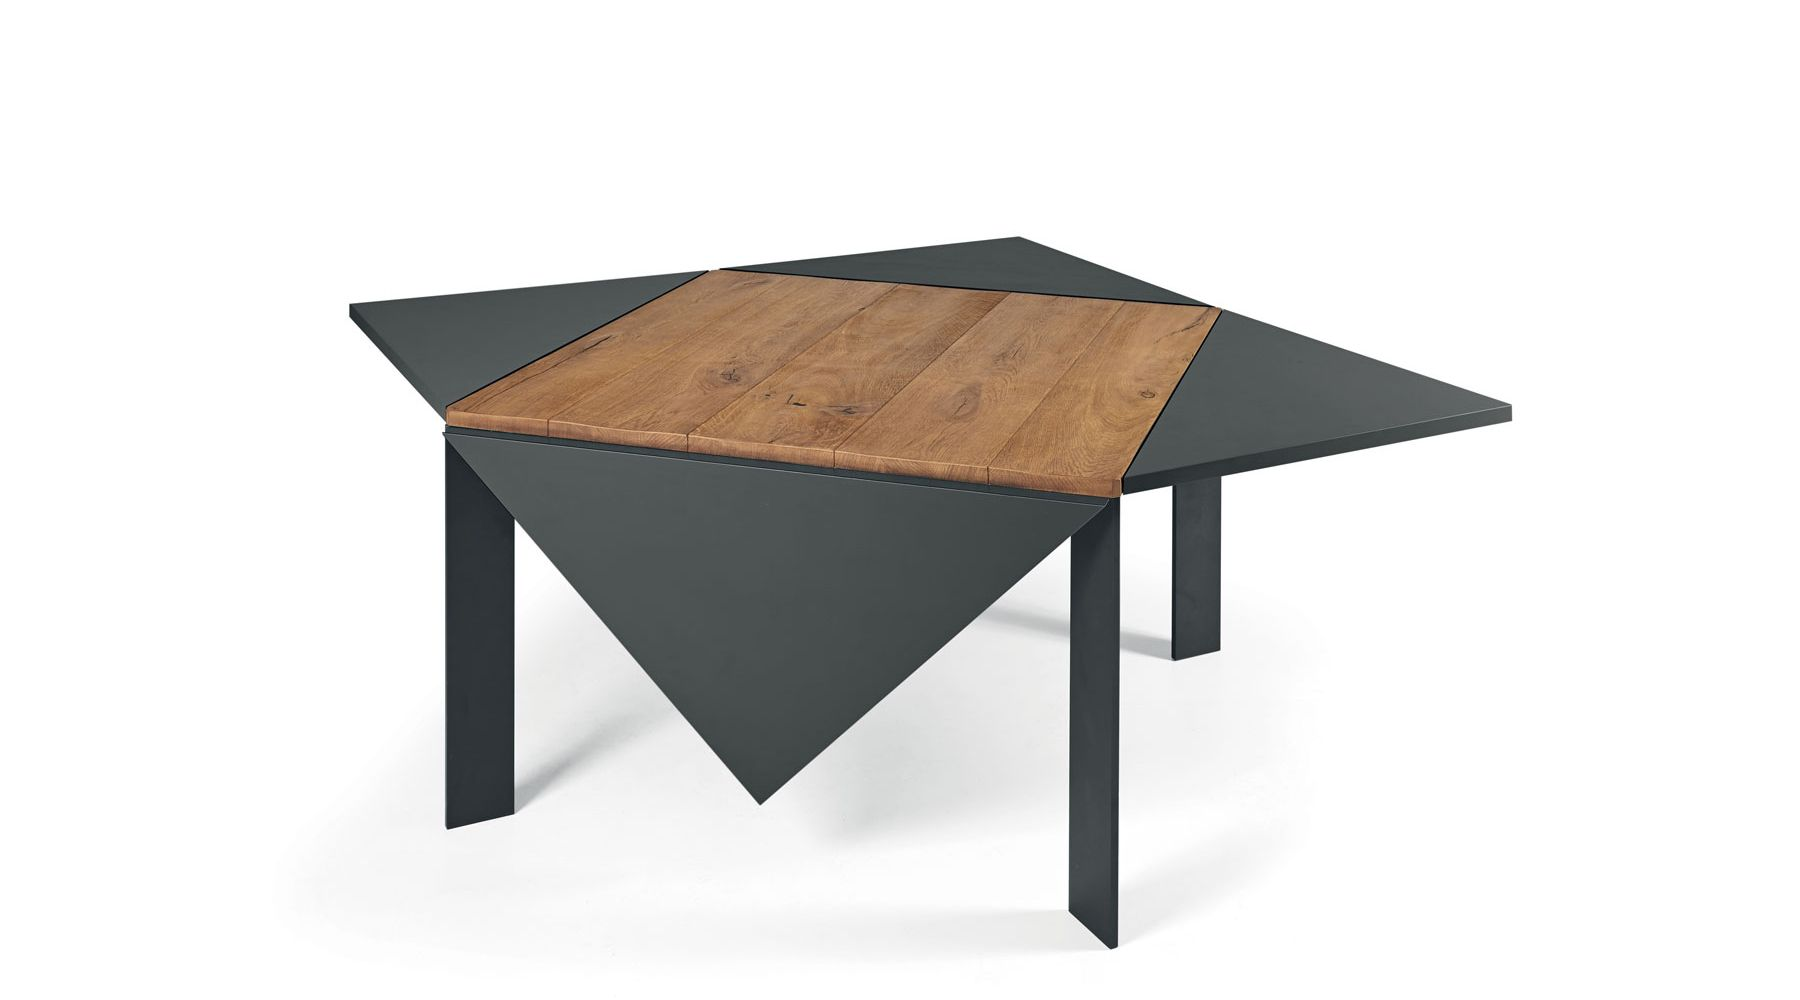 Table De Ping Pong Transformable table loto in 2019 | table, interactive table, wooden tables